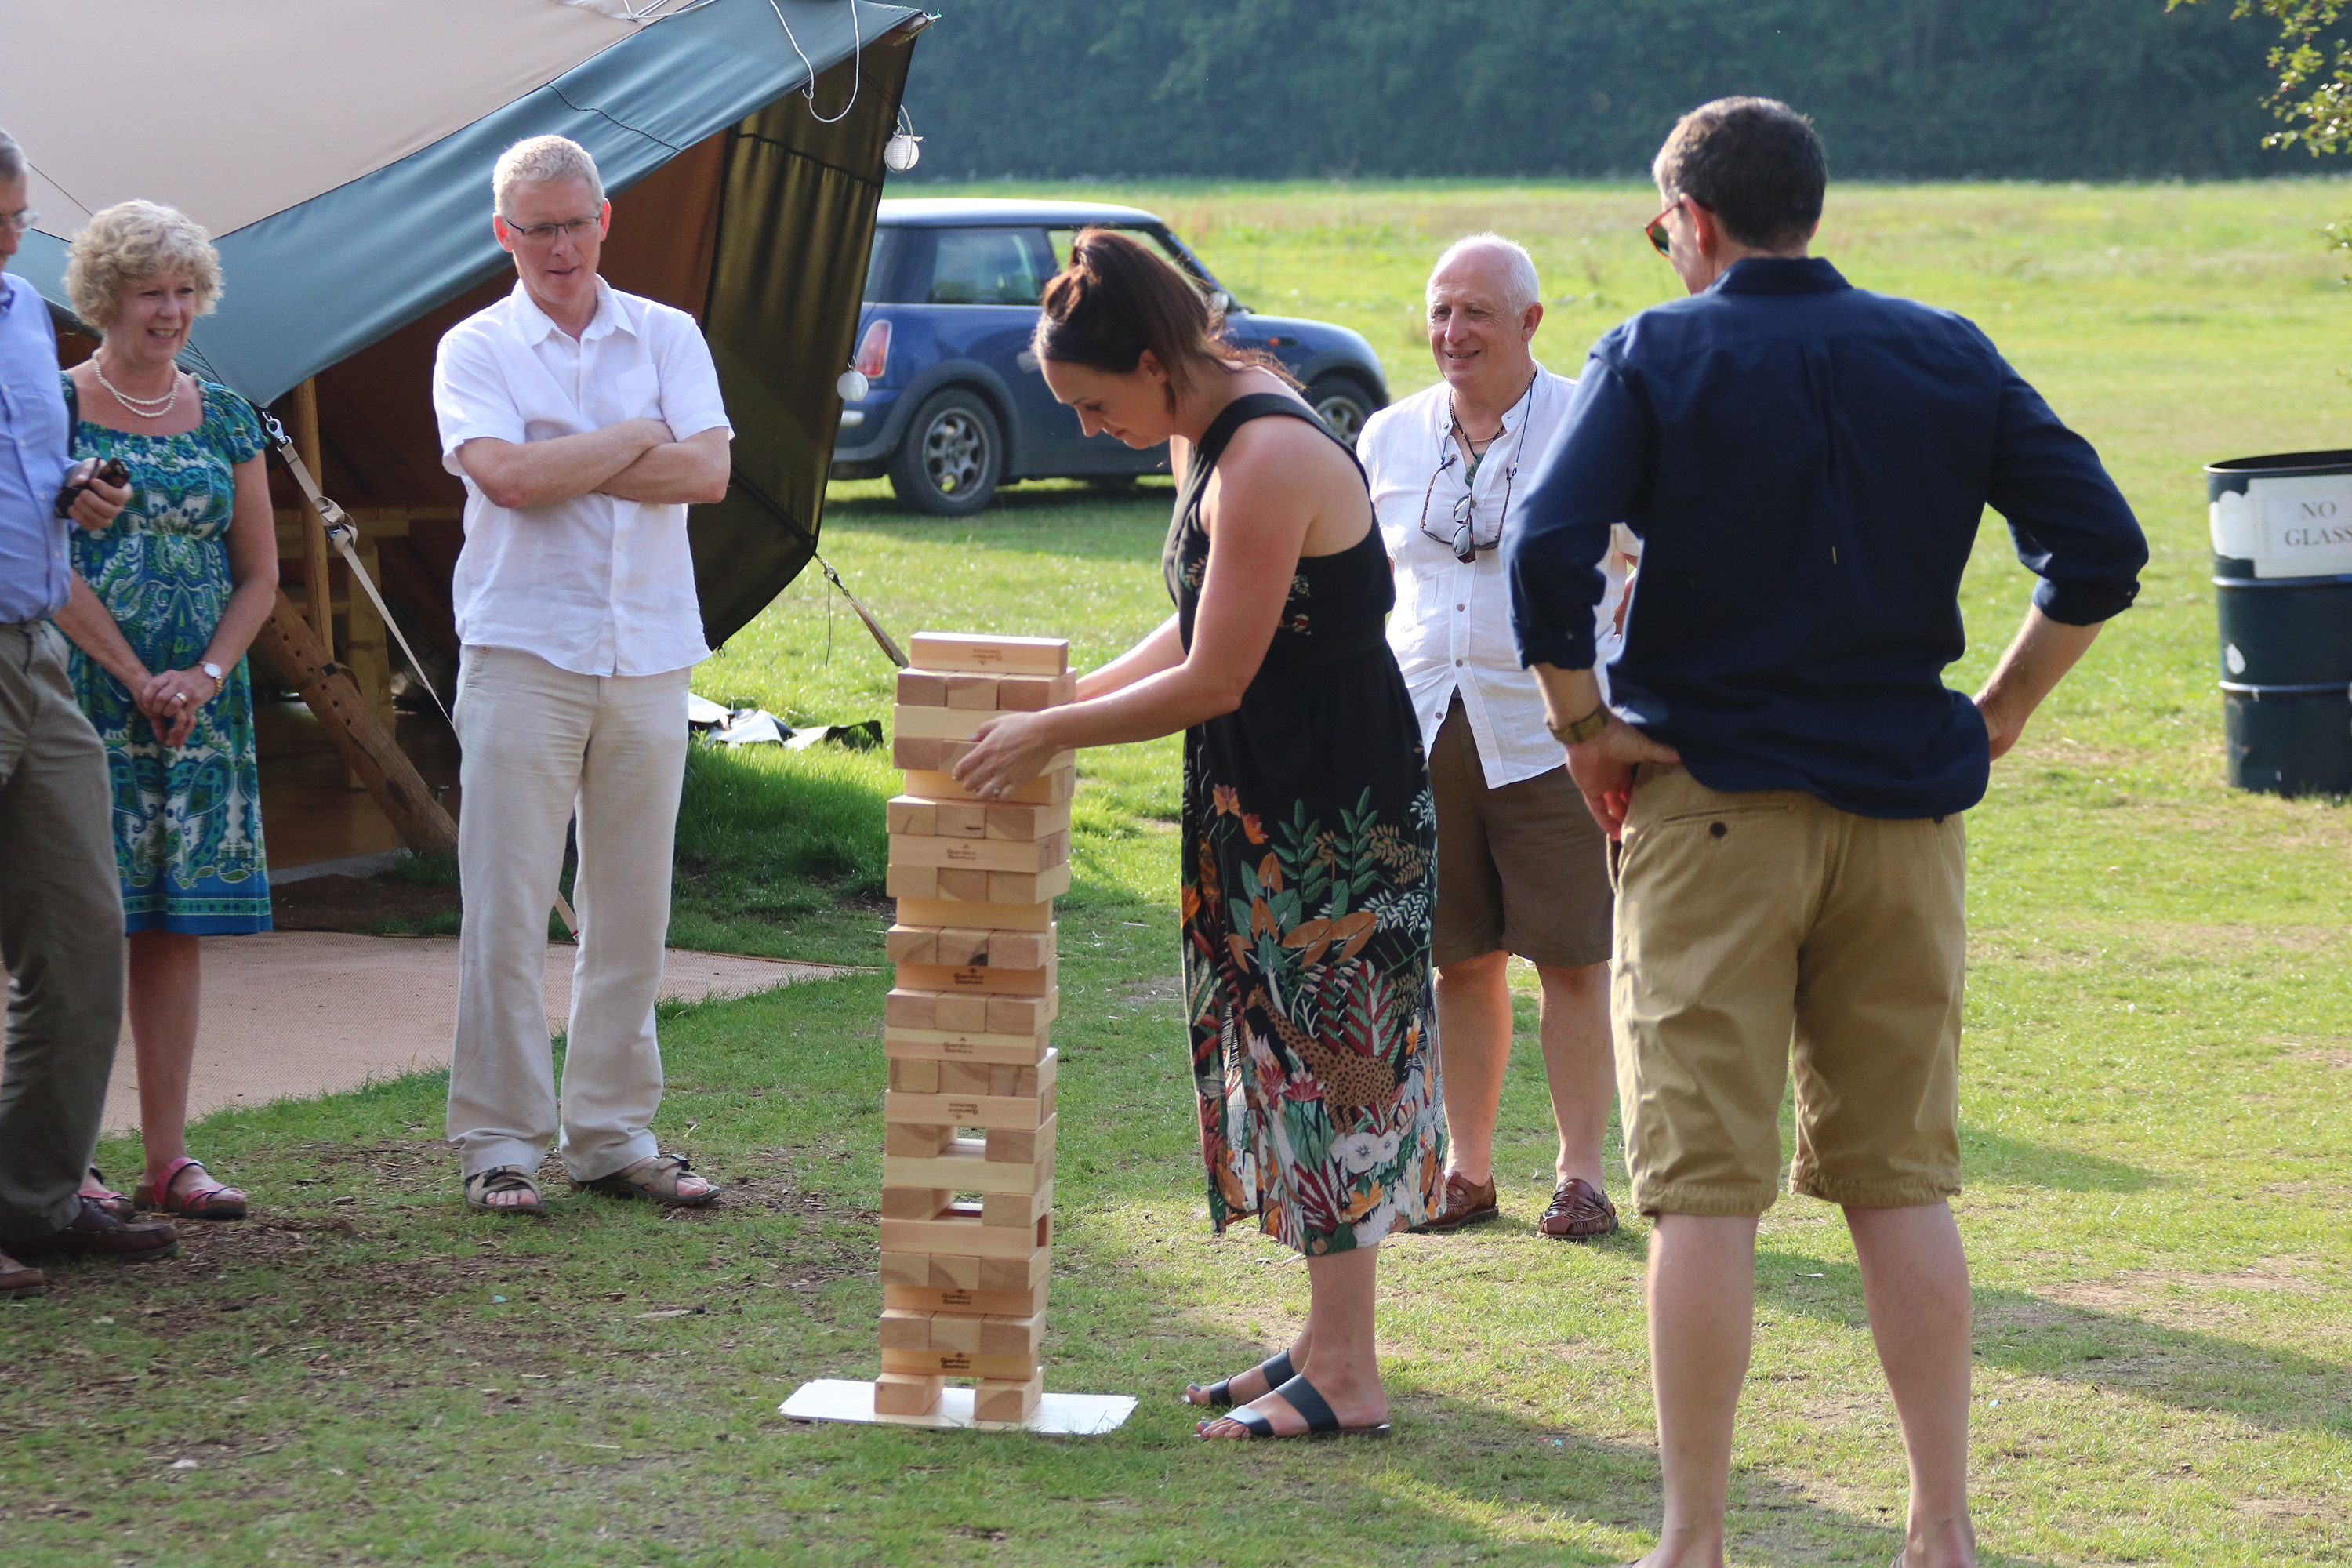 Mansfield Monk 25th anniversary celebrations - outside a teepee, people playing jenga